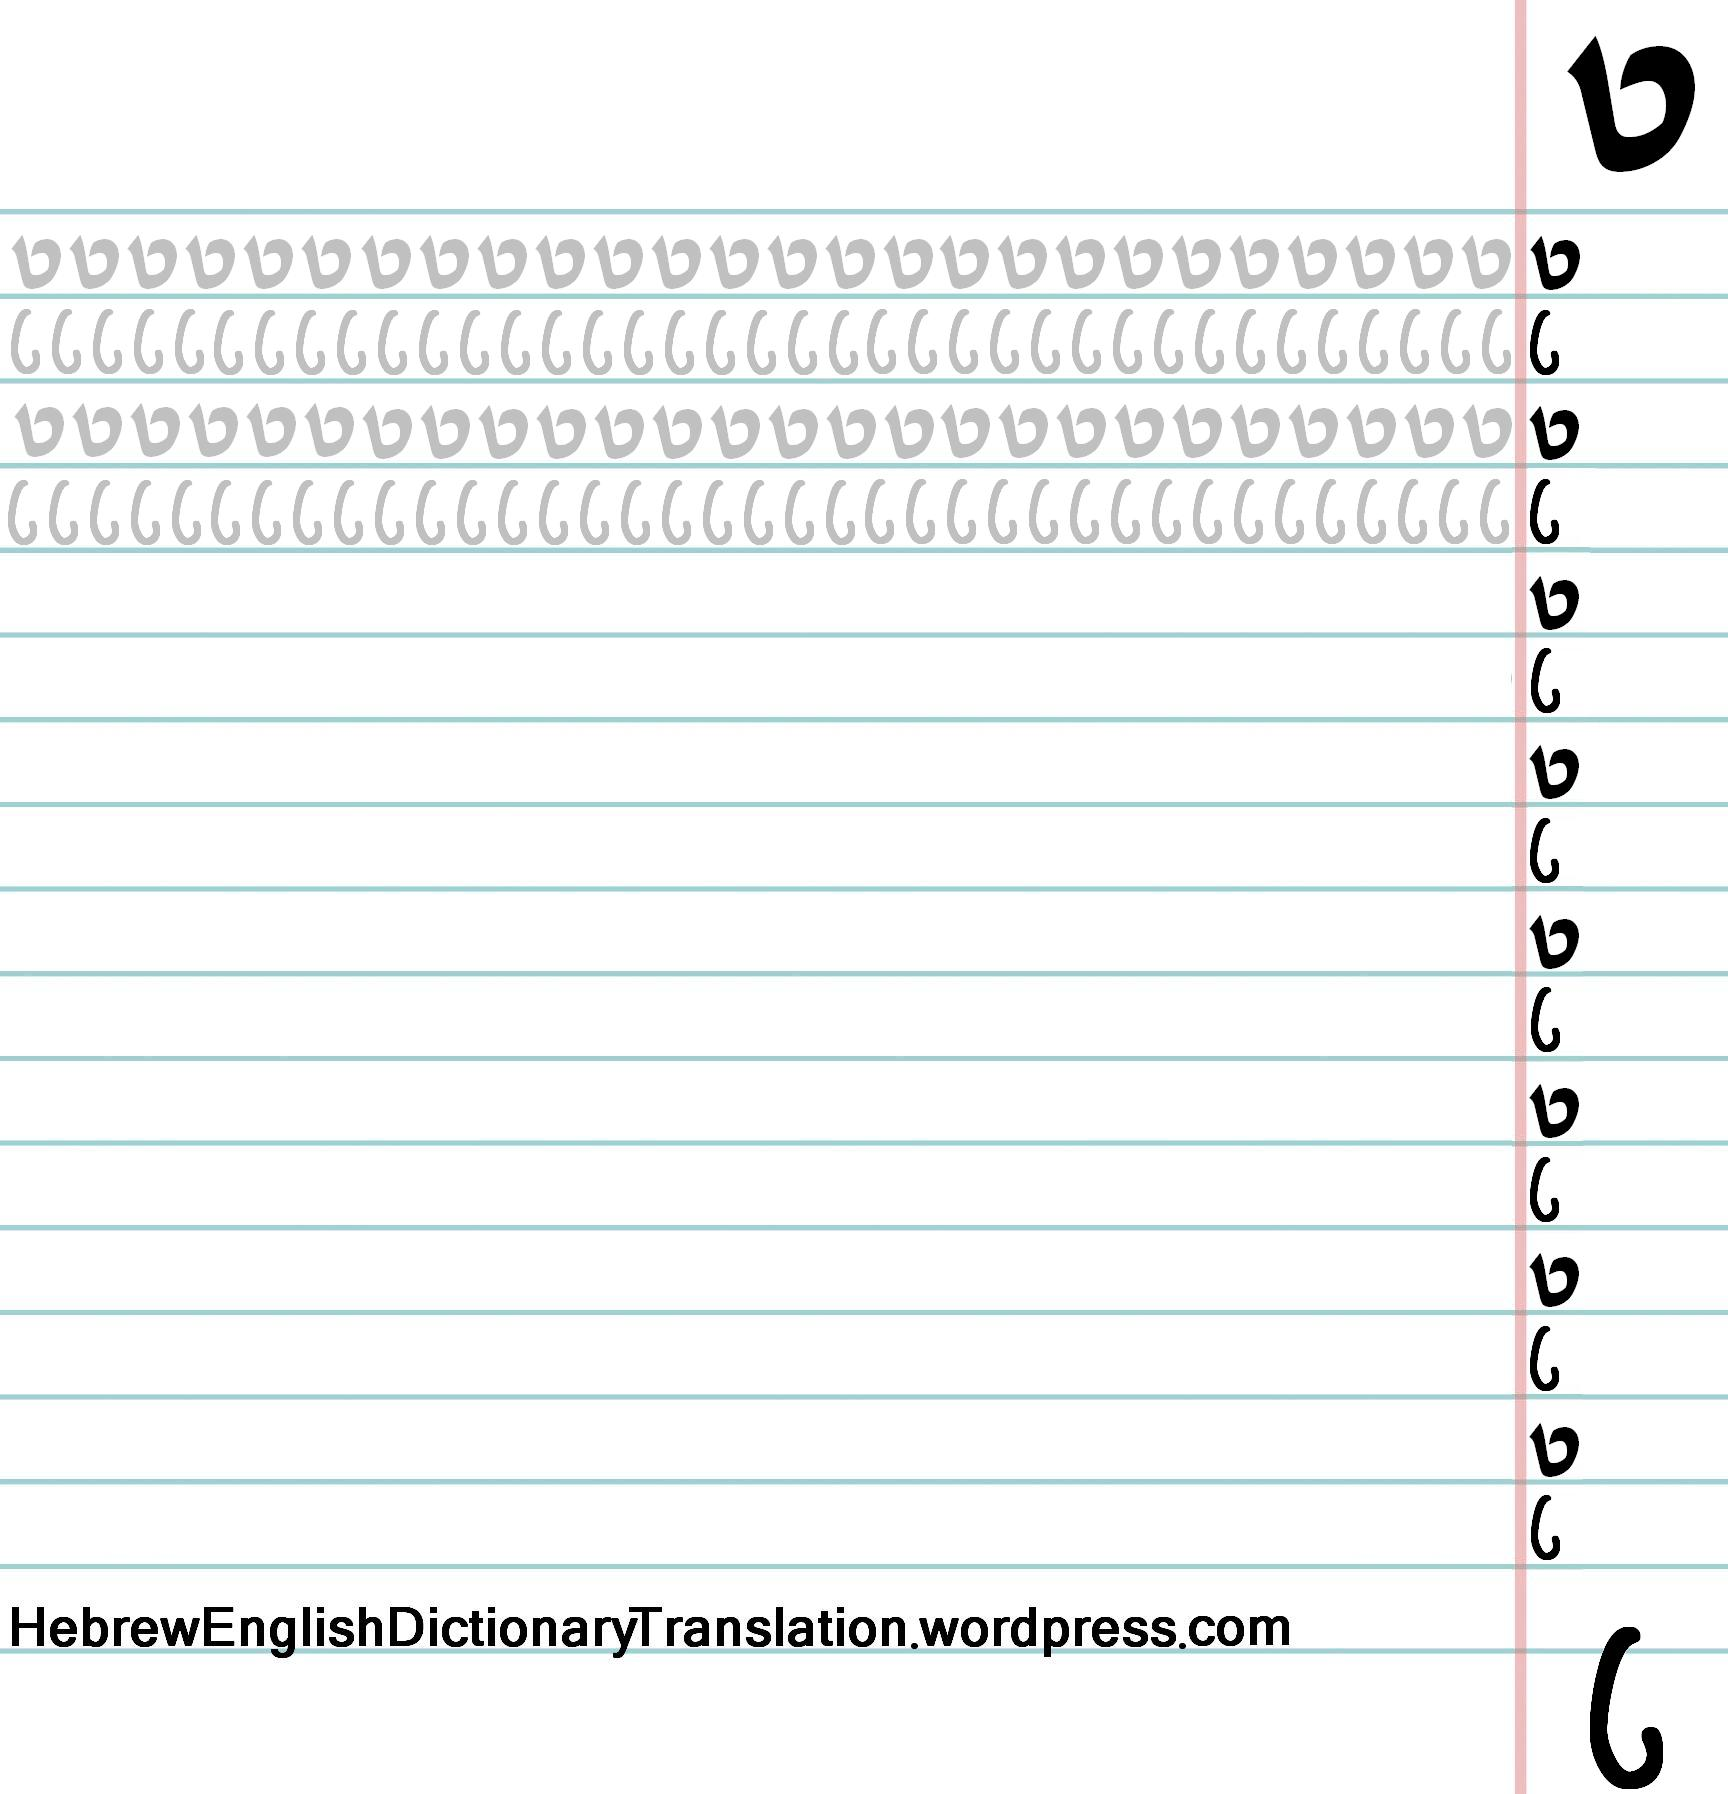 Free Handwriting worksheets for kids including consonent sounds, short ...